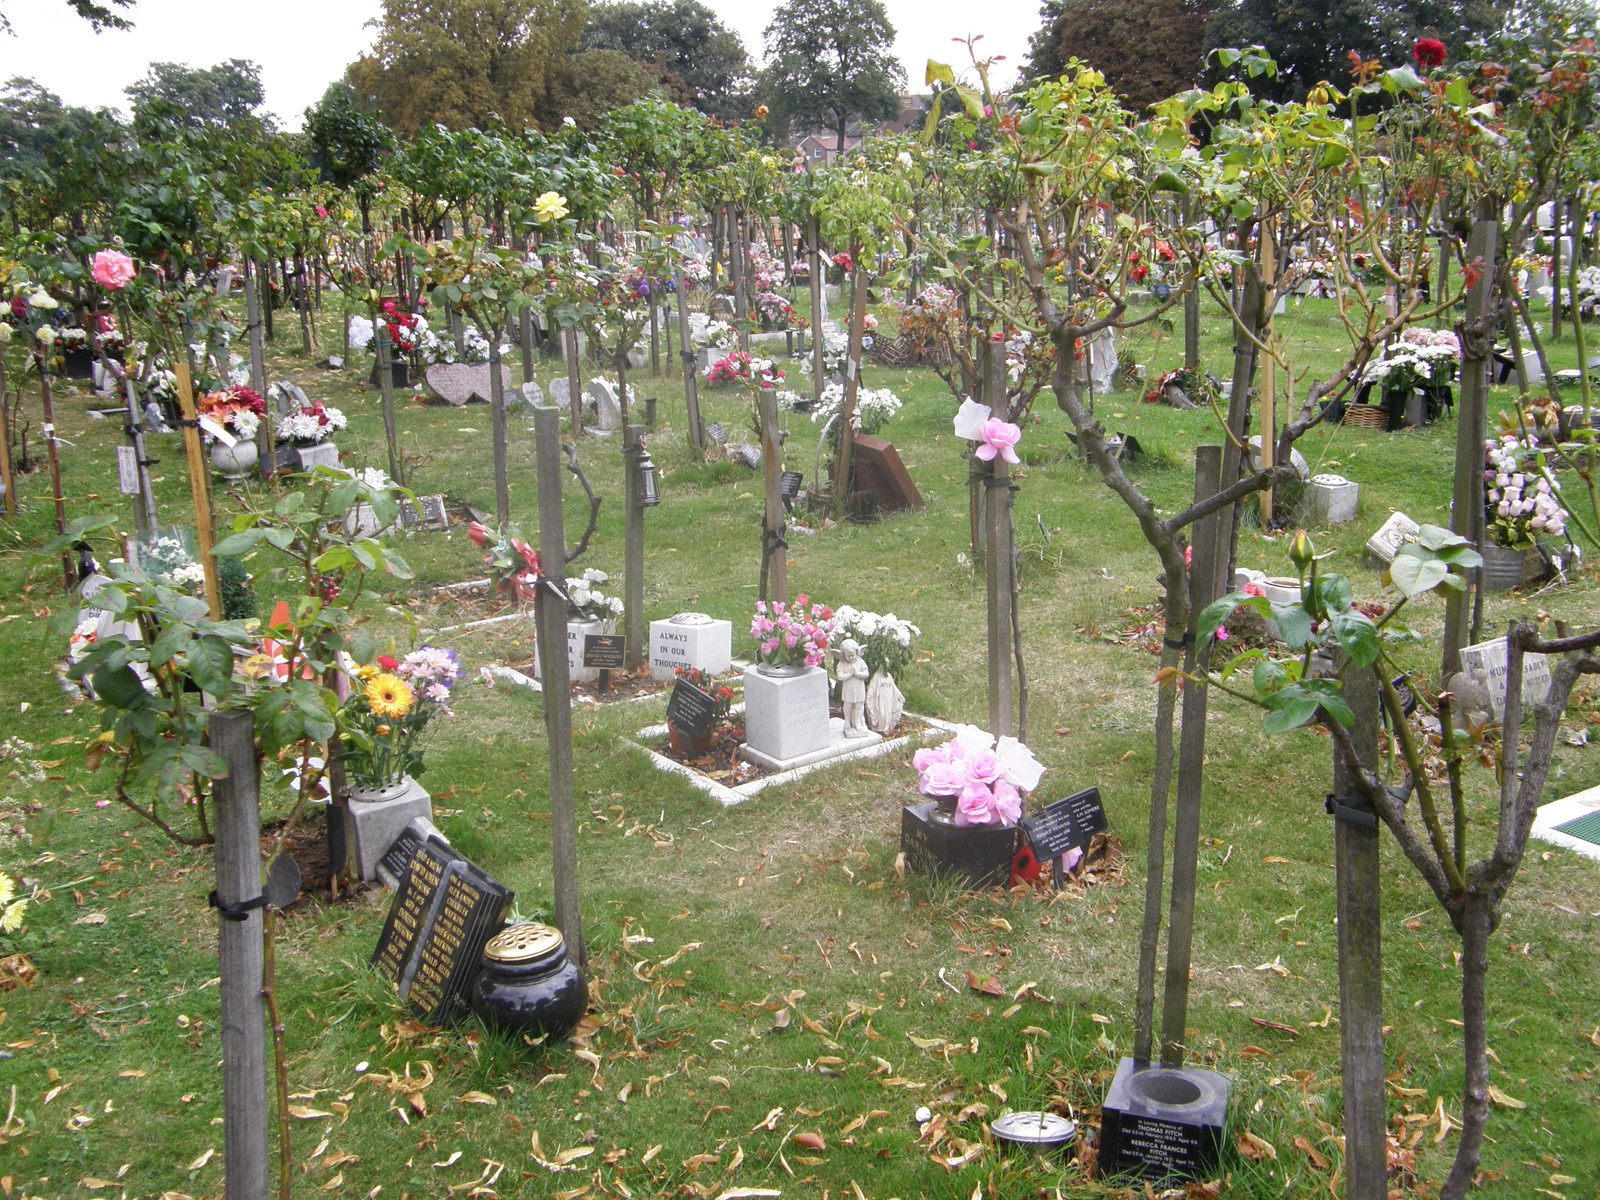 The 'orchard' in East London Cemetery